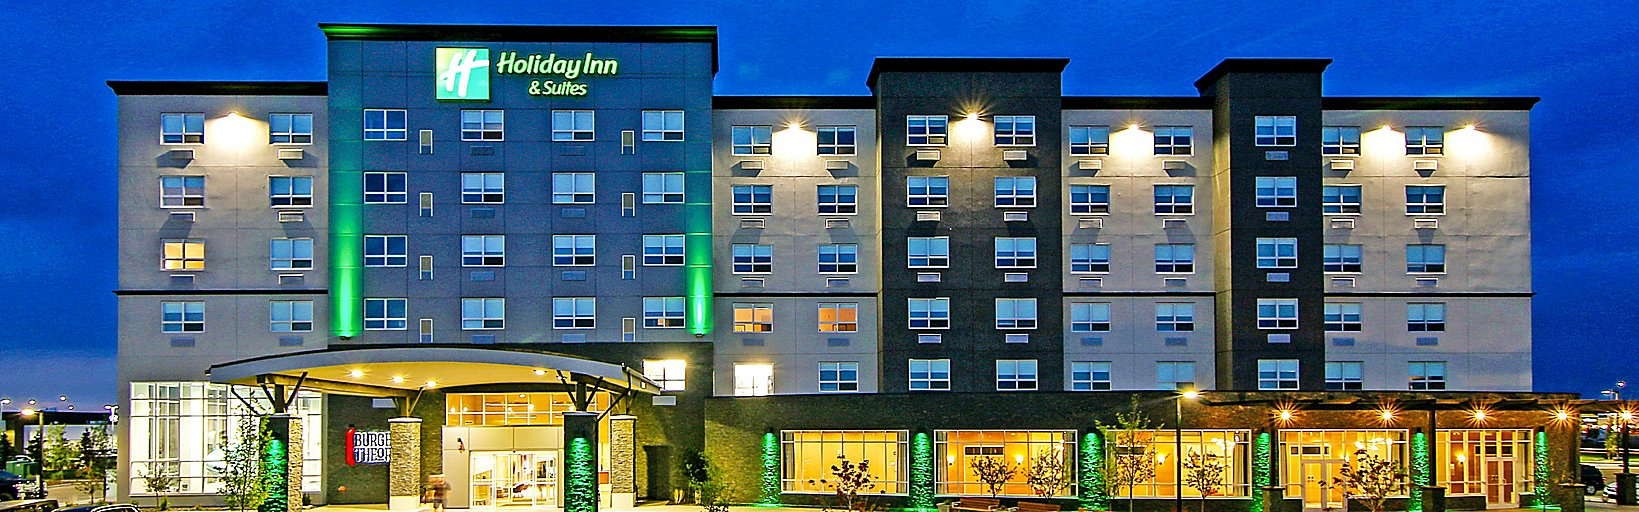 holiday-inn-hotel-and-suites-calgary-5635627472-16x5 (1).jpg